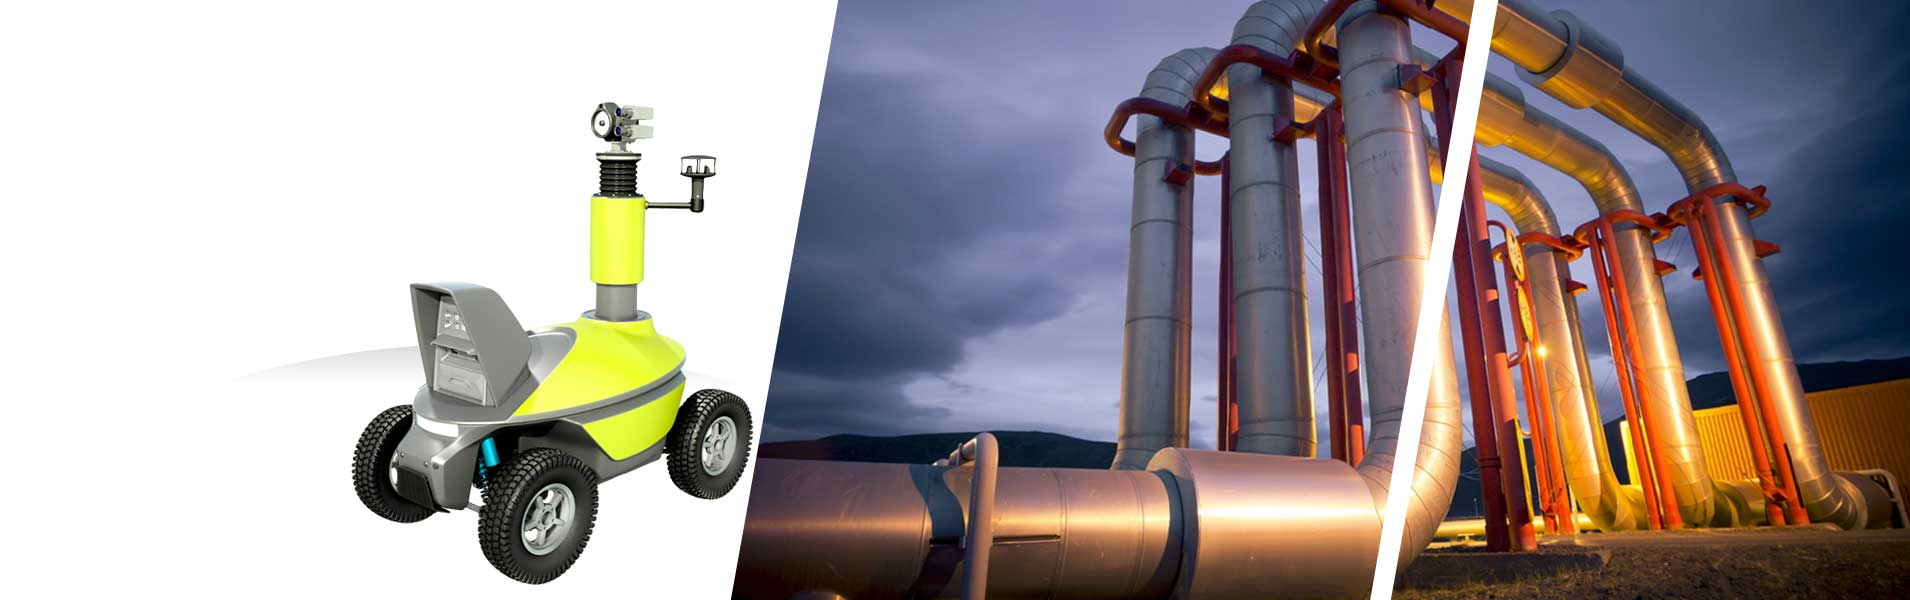 remote_detection_and_localization_of_gas_leaks_robotic_system